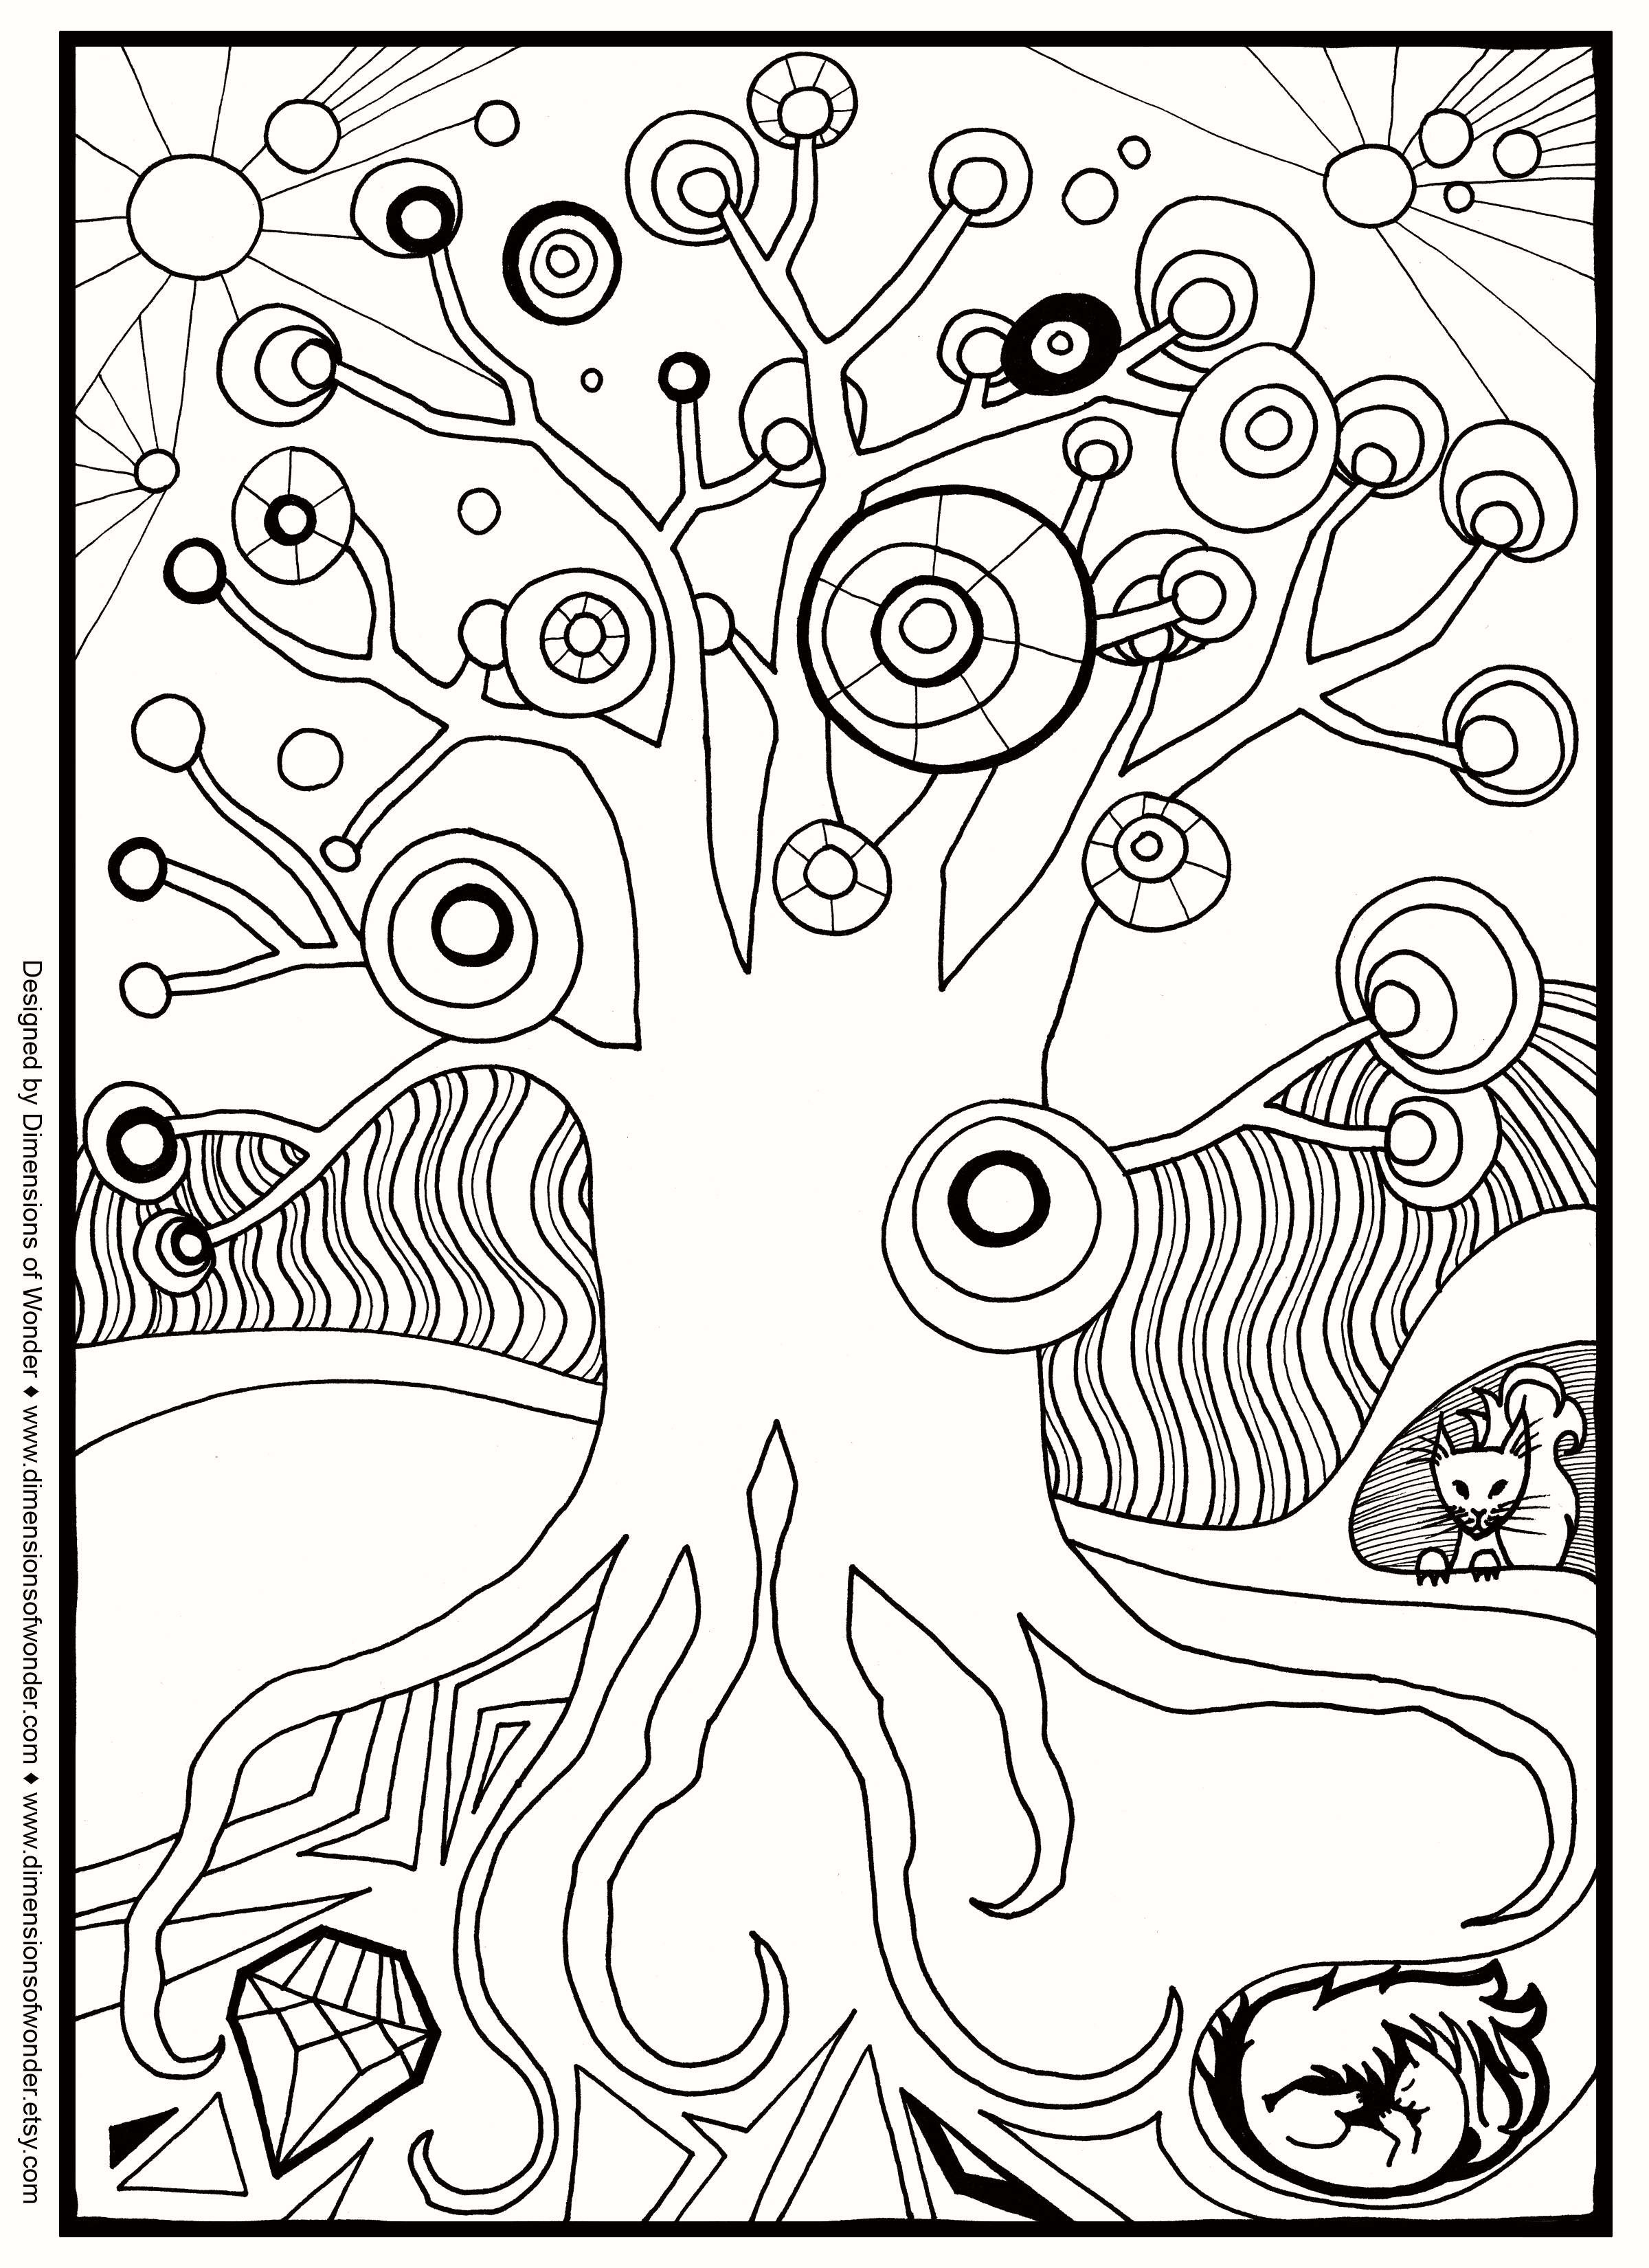 Llama Christmas Coloring Pages With Ornament Beautiful Ornaments